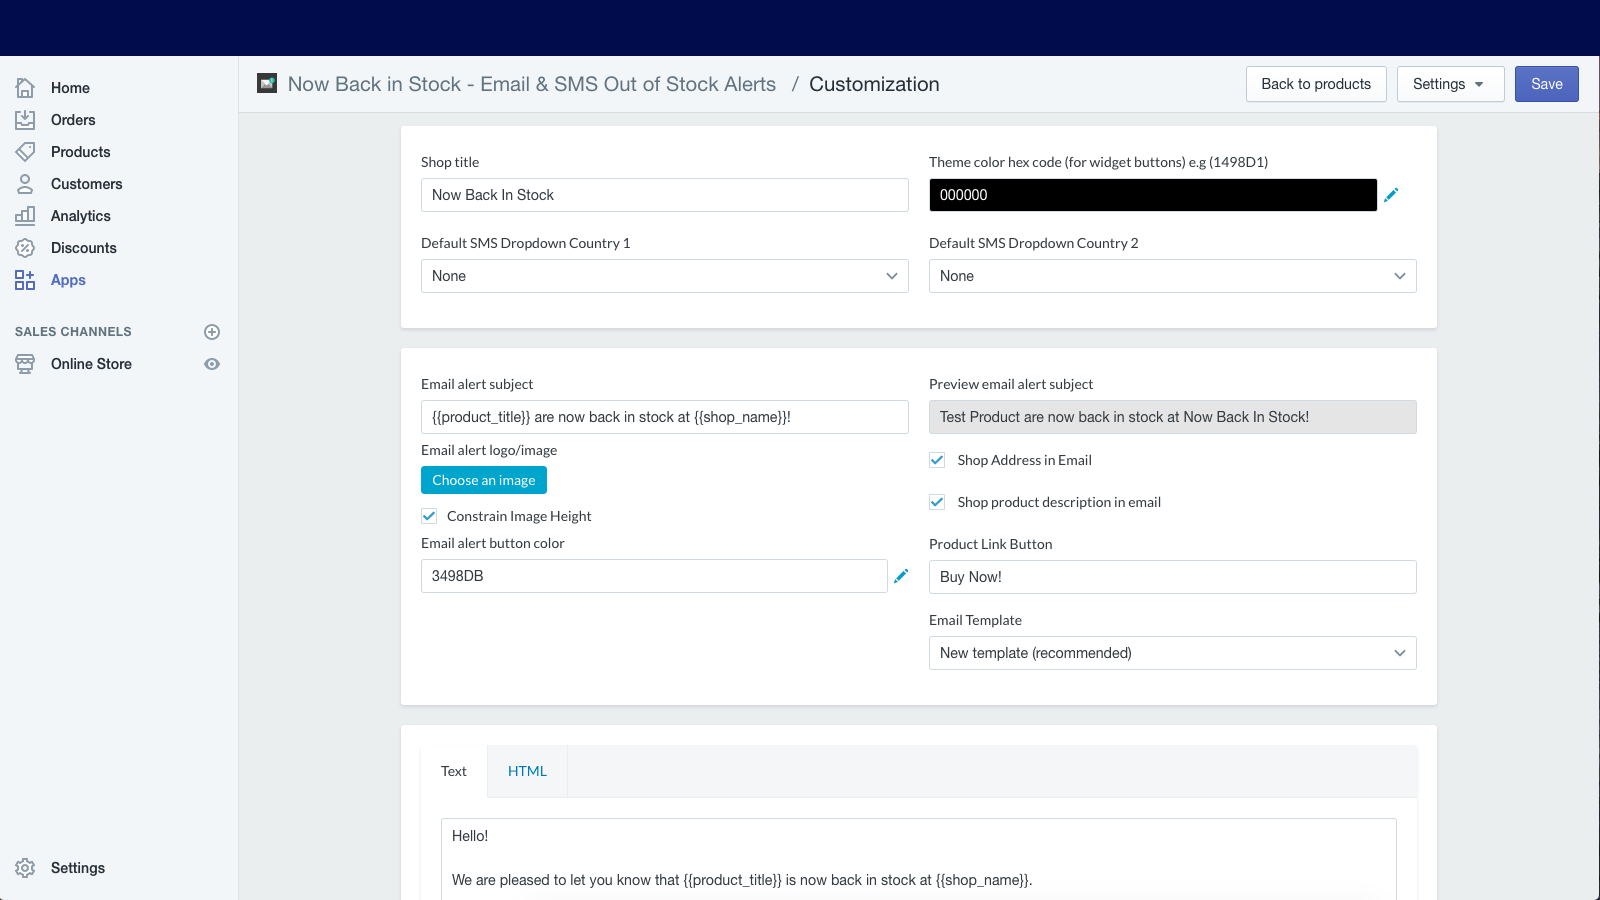 Easily customize alert emails, or provide your own HTML template